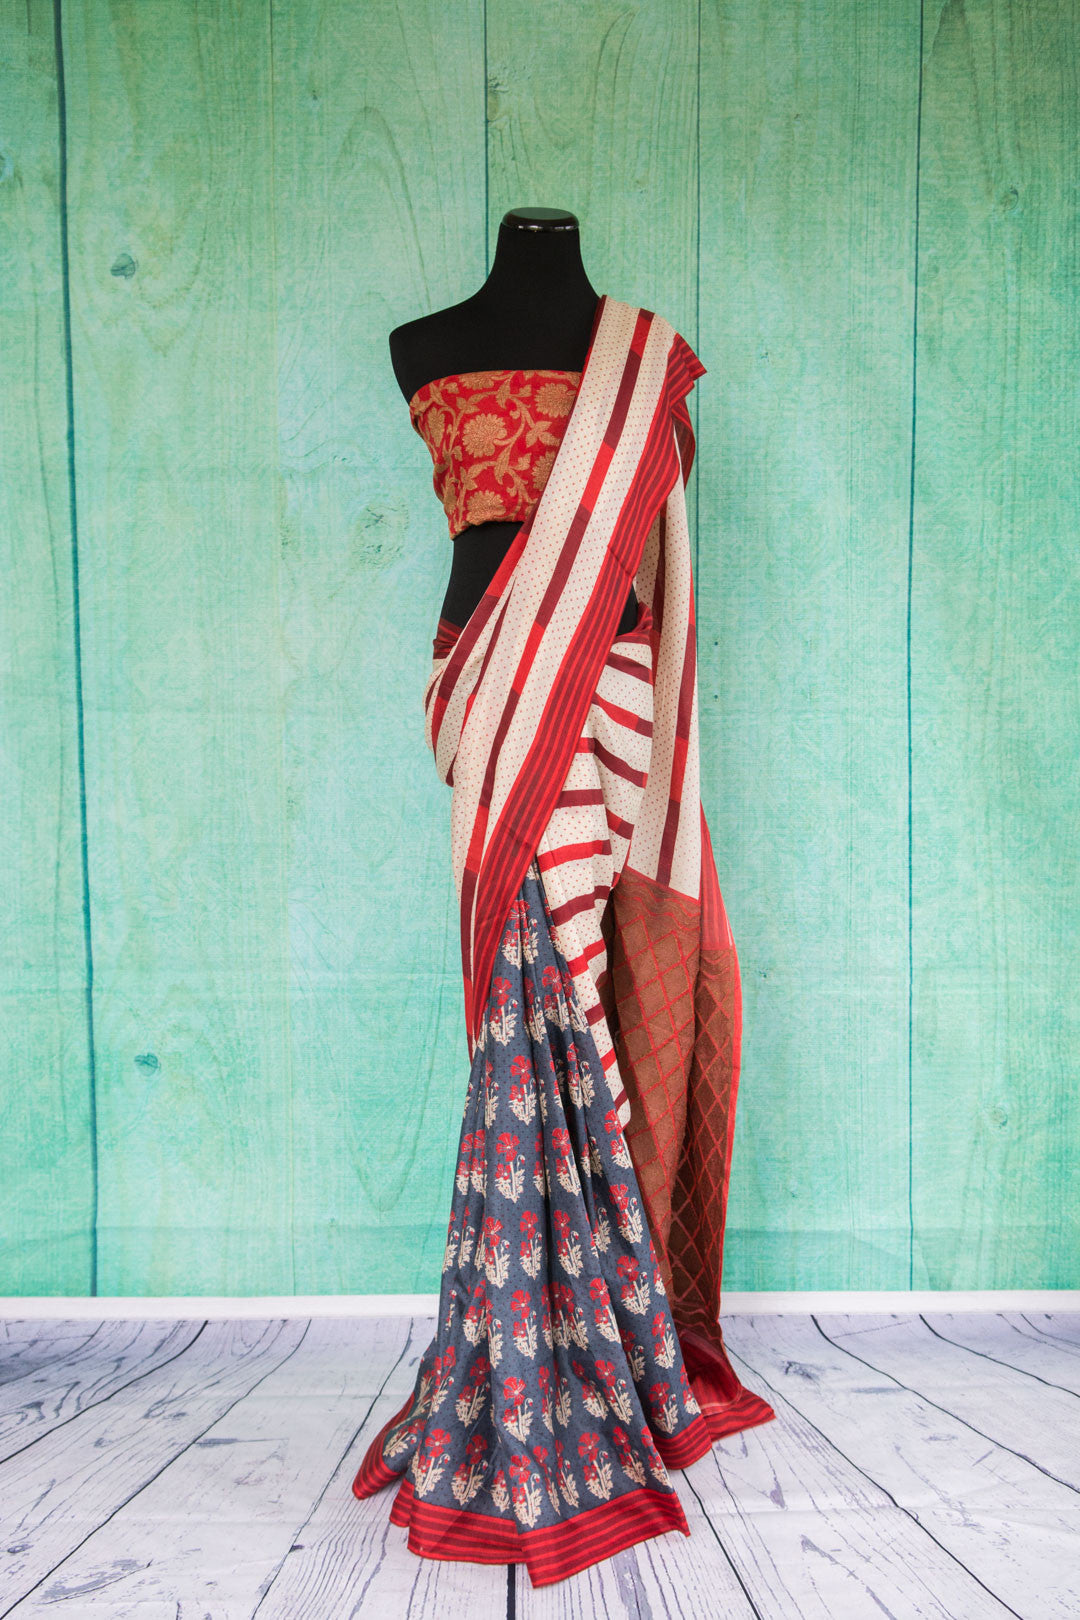 90c033Half & half, striped & floral saree. The red, white and blue woven saree from Banaras makes for a bold party wear Indian outfit & is available at our store Pure Elegance online and in our store in Edison, USA.